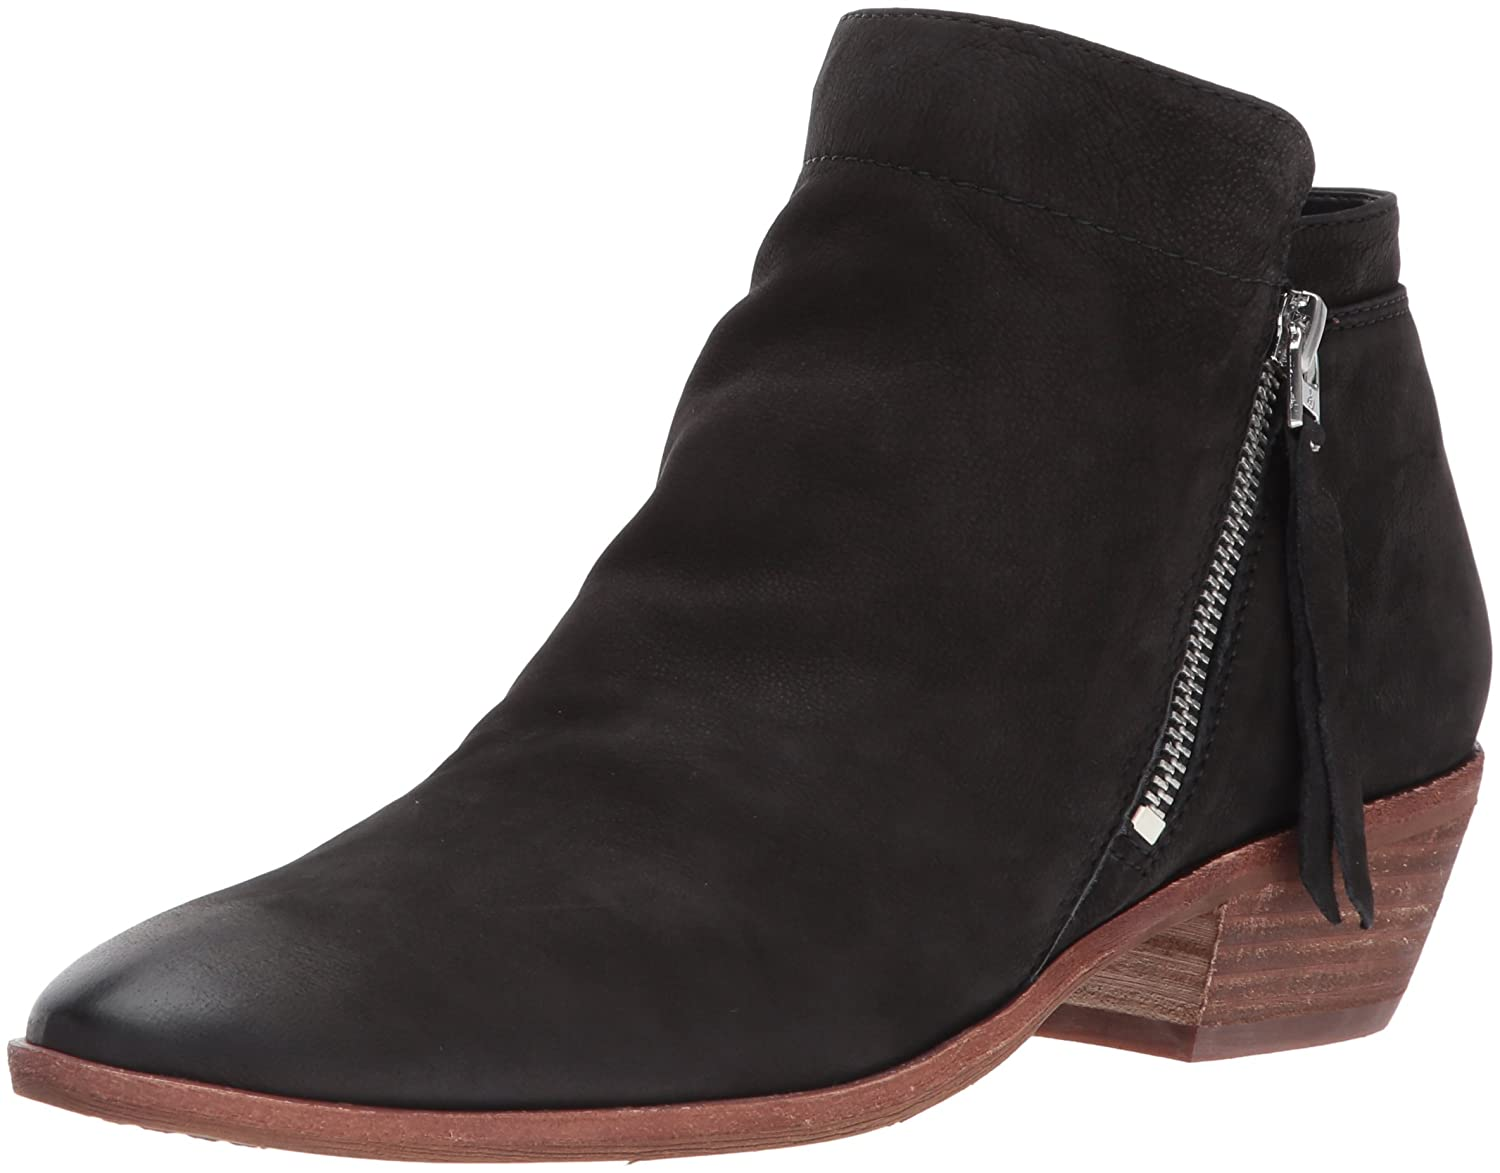 Sam Edelman Women's Packer Ankle Boot B06XC9J9J8 12 B(M) US|Black Leather